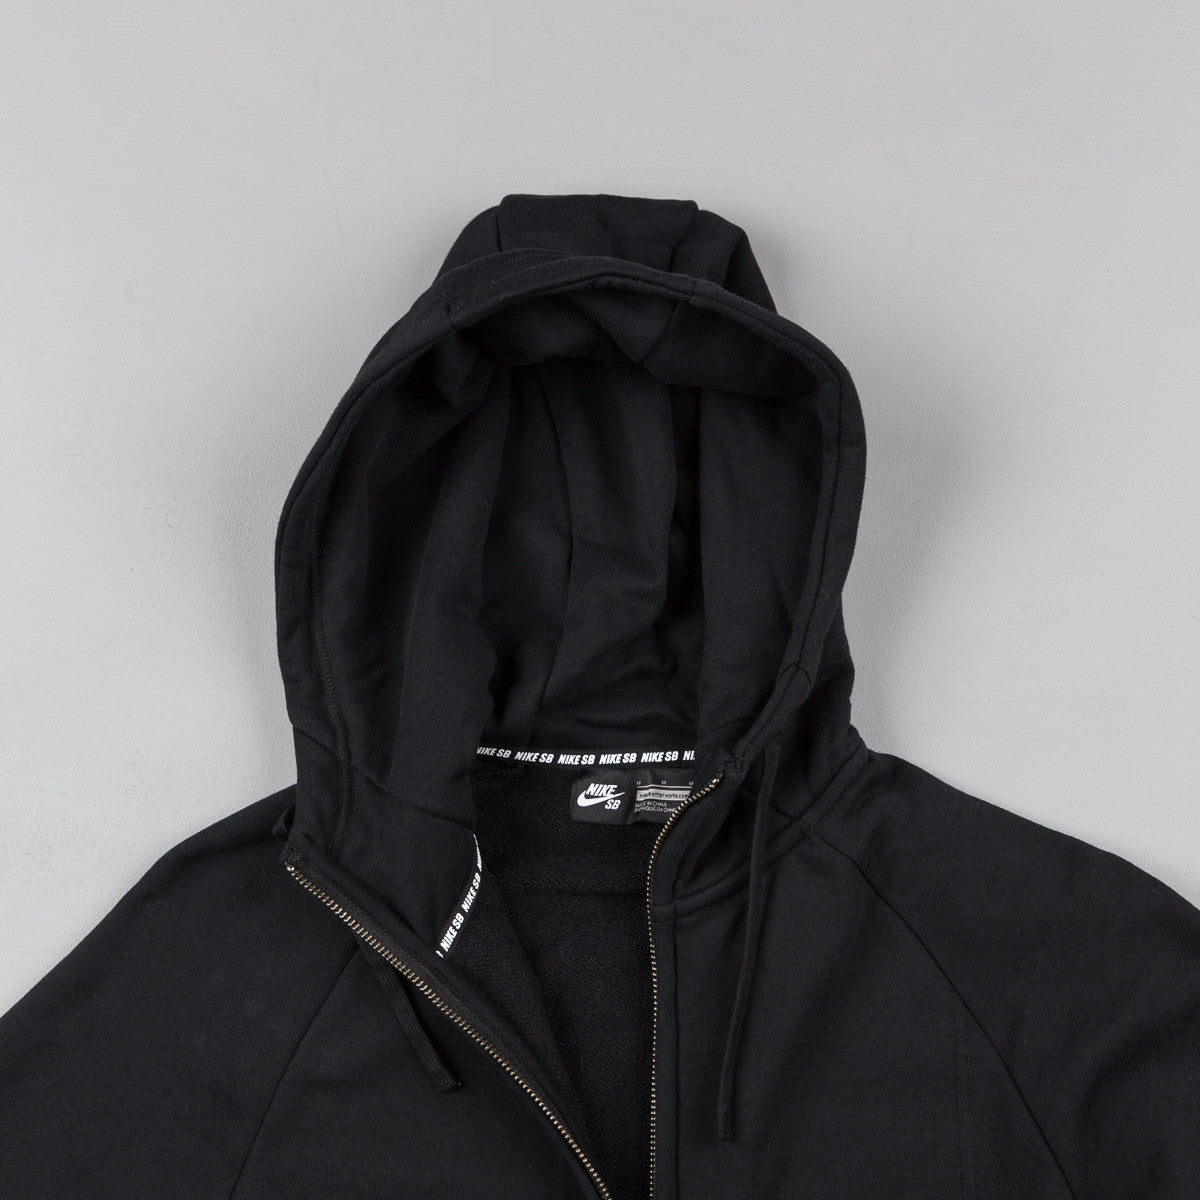 Nike SB Everett Graphic Full-Zip Hooded Sweatshirt  - Black / White